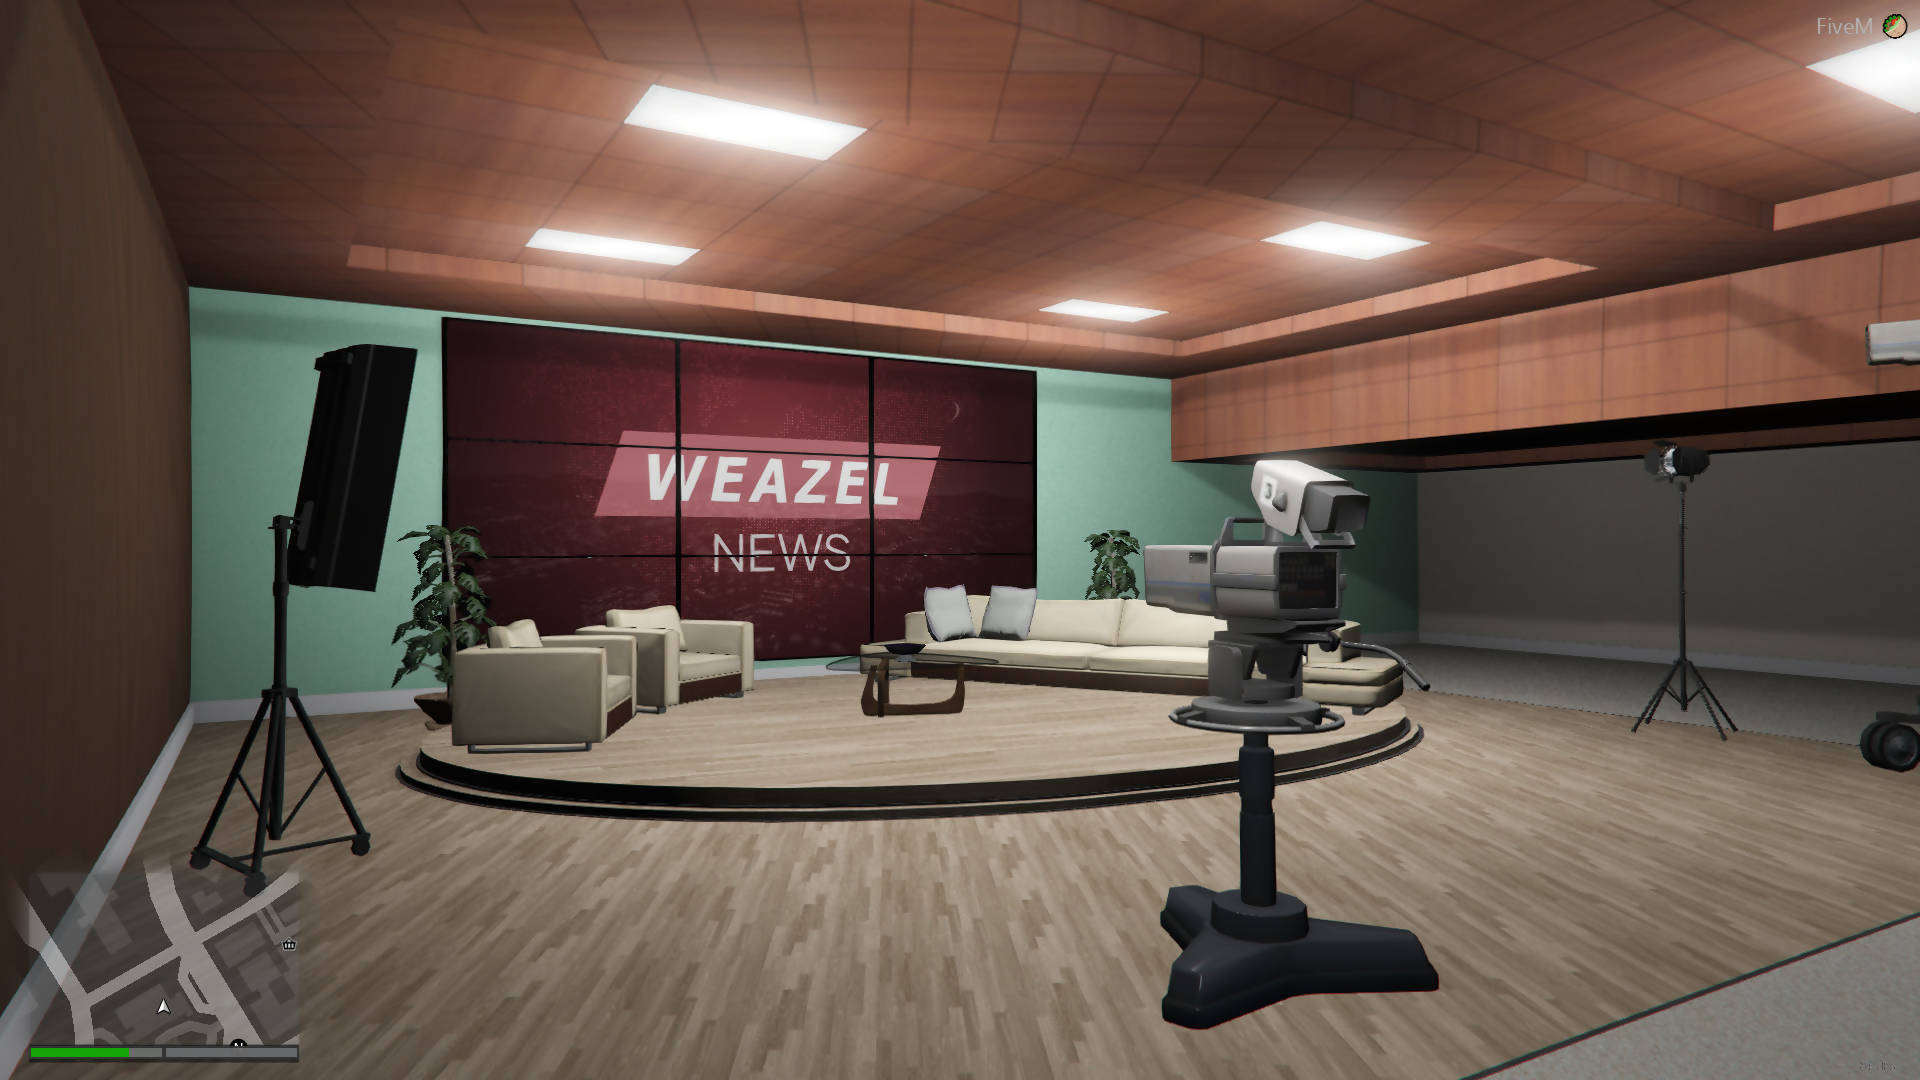 Weazel News Open MLO Interior